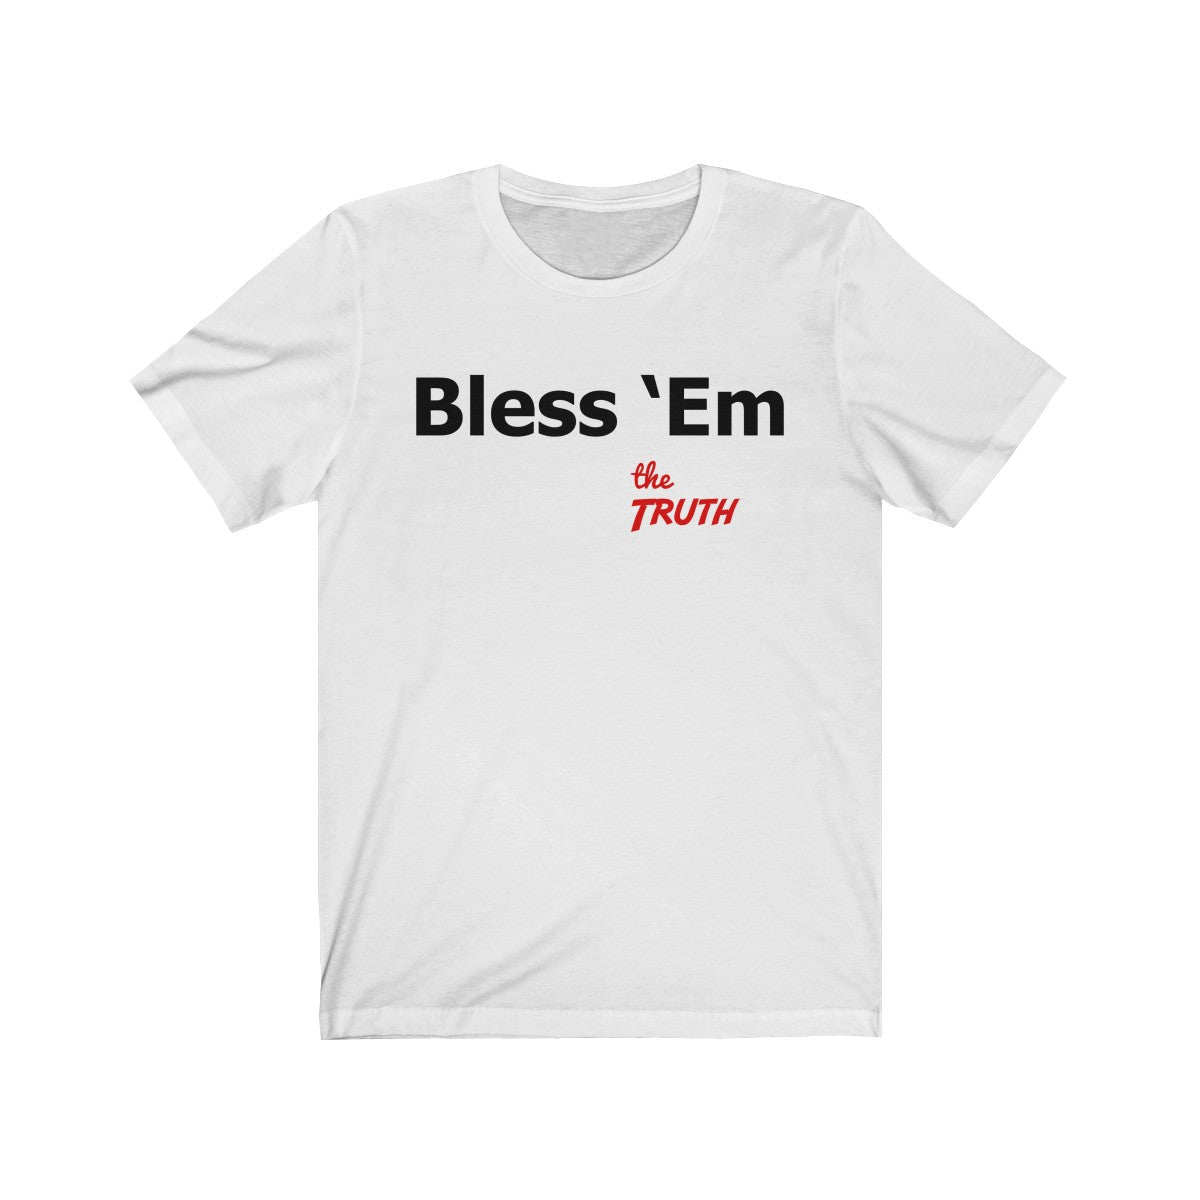 Christian Shirt You've got a job to do, Bless 'Em! Bless them with your ability and gifts.